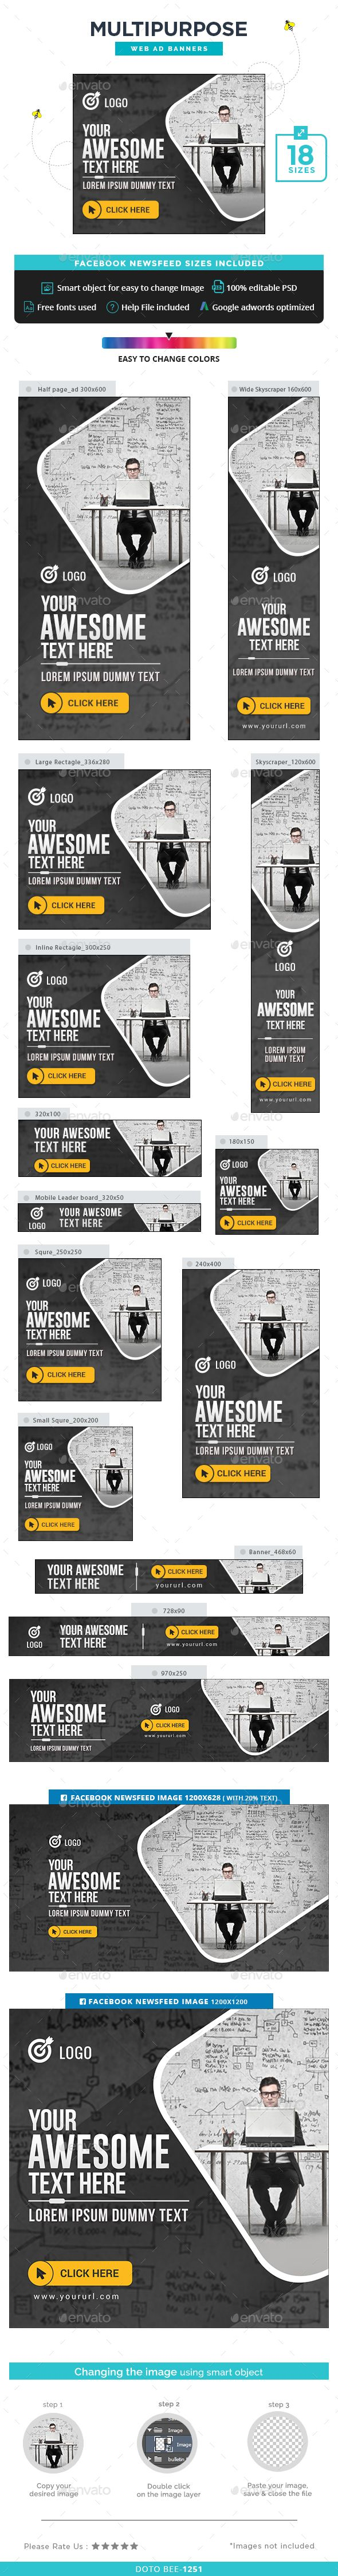 116 best banner images on Pinterest | Page layout, Advertising and ...